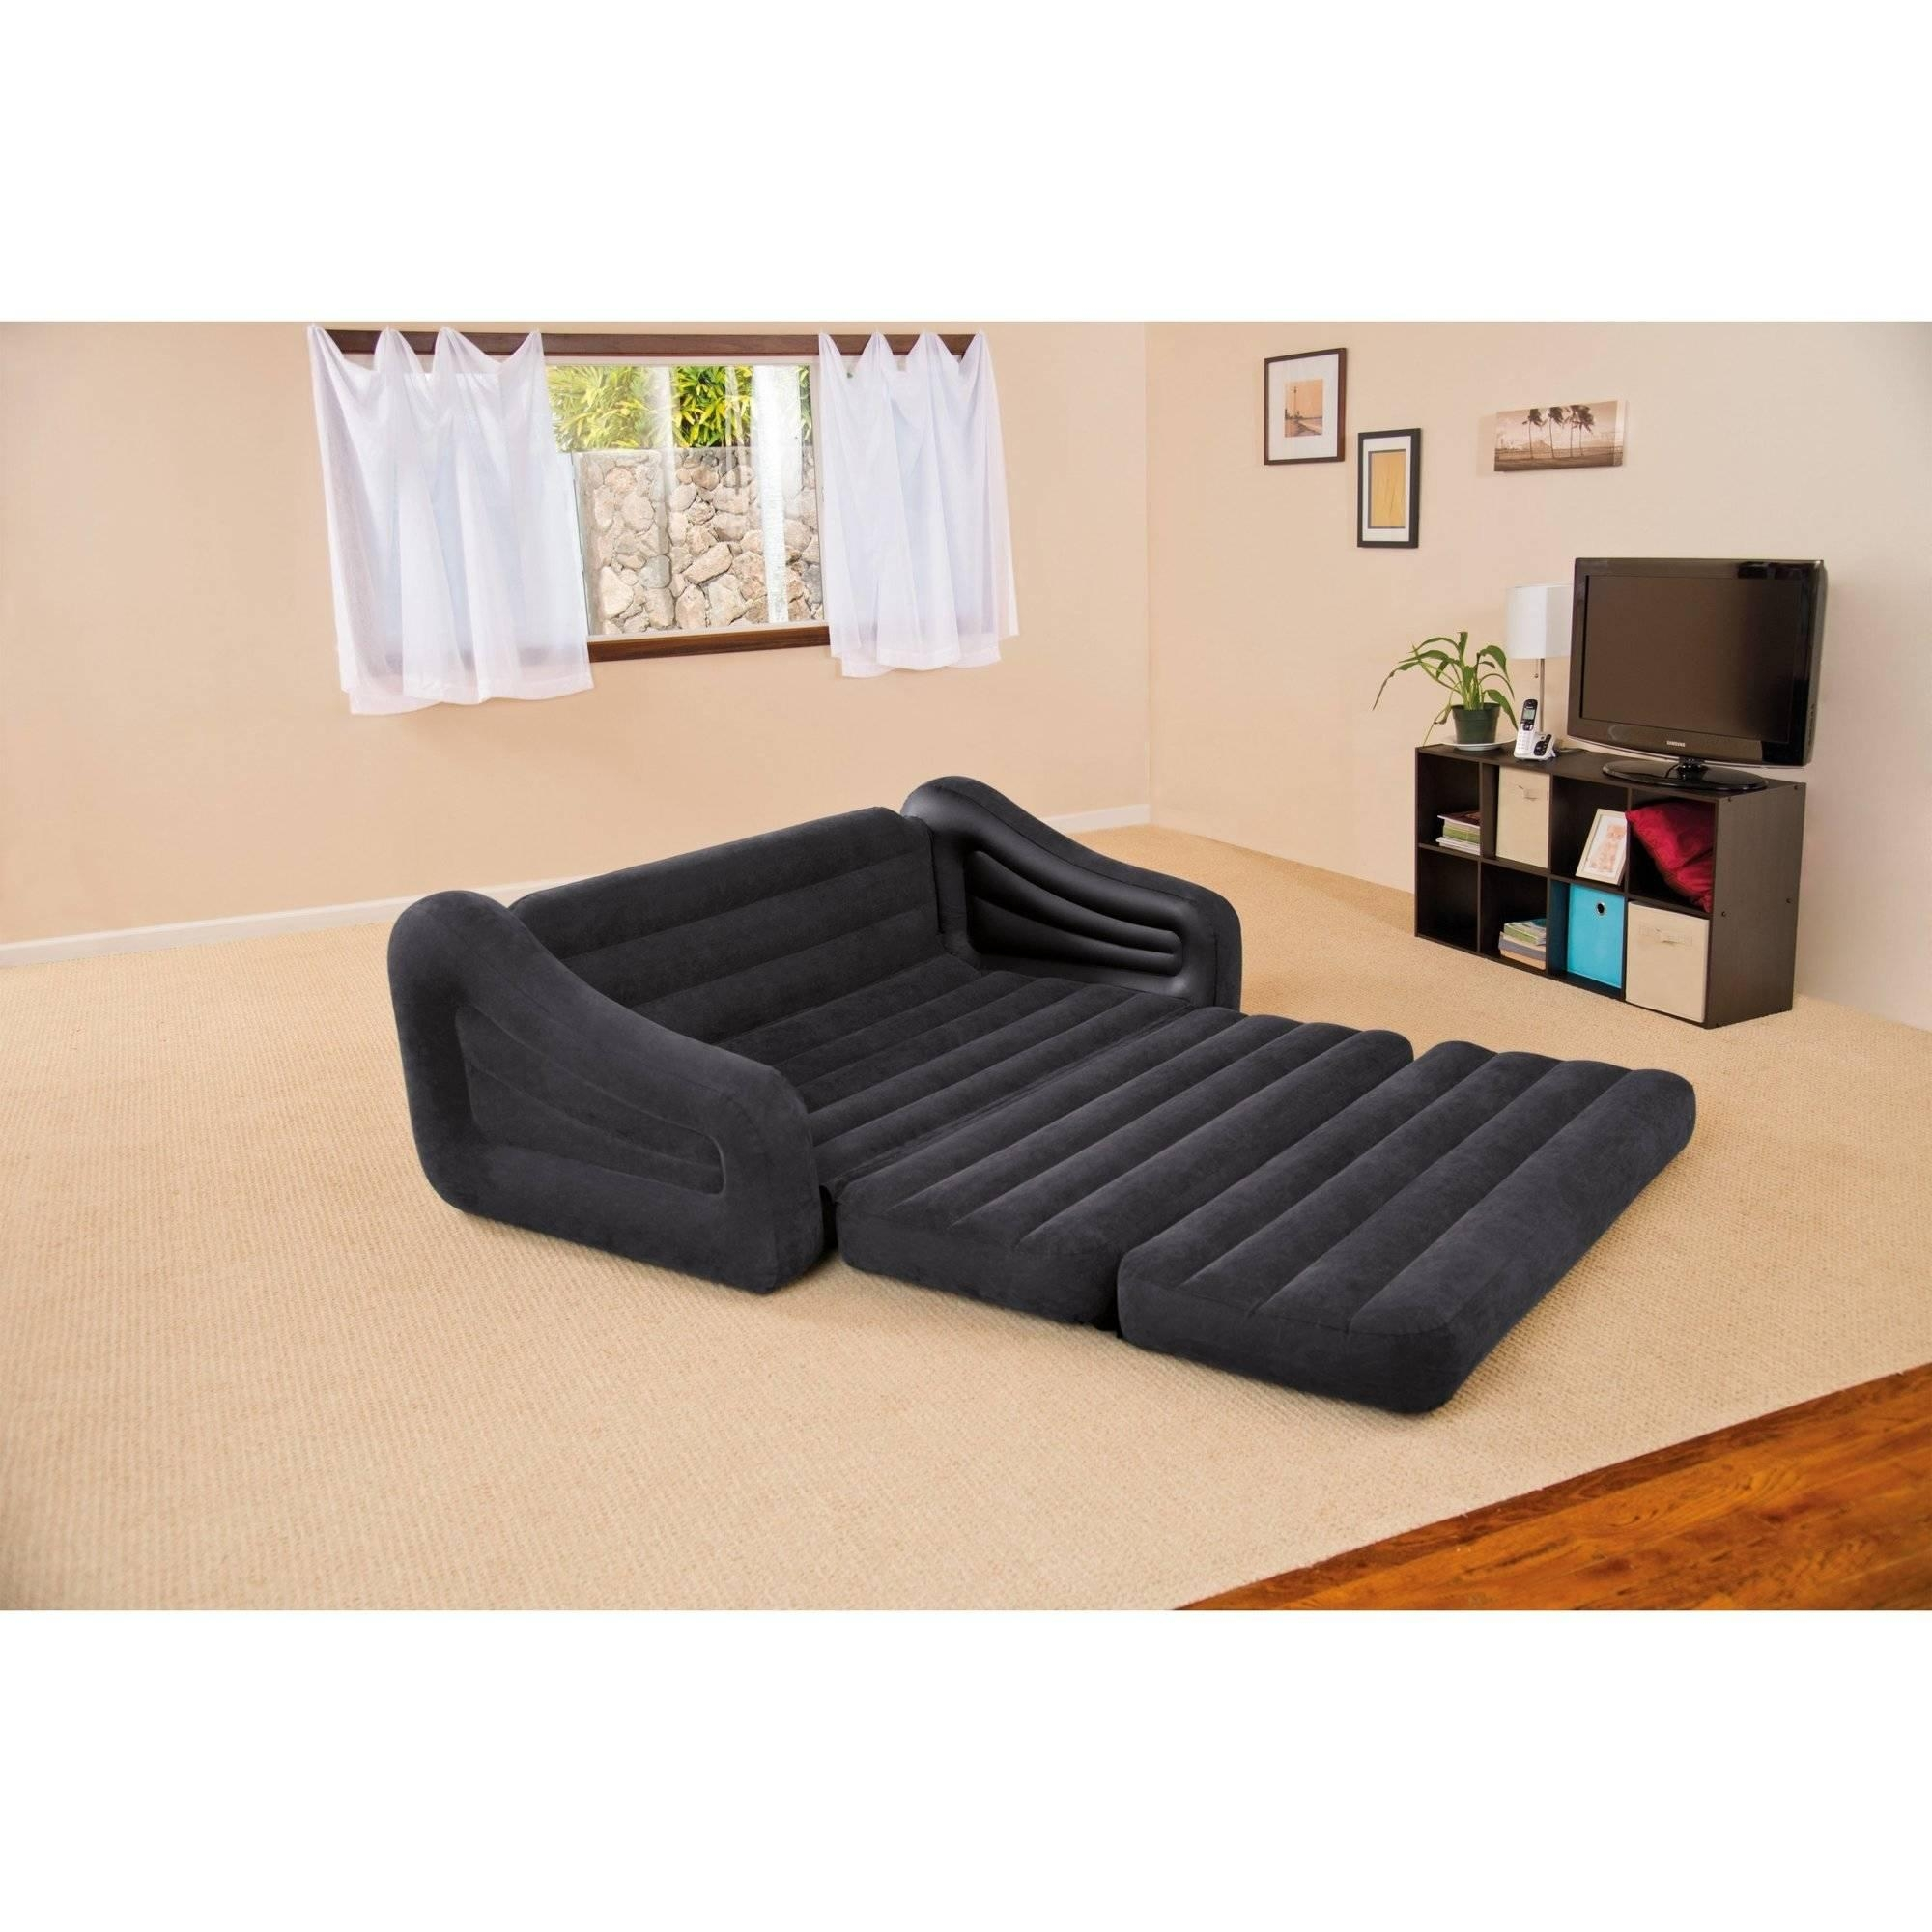 Furniture: Leather Futon Walmart | Futons At Kmart | Futon Full Size In Kmart Futon Beds (View 20 of 20)